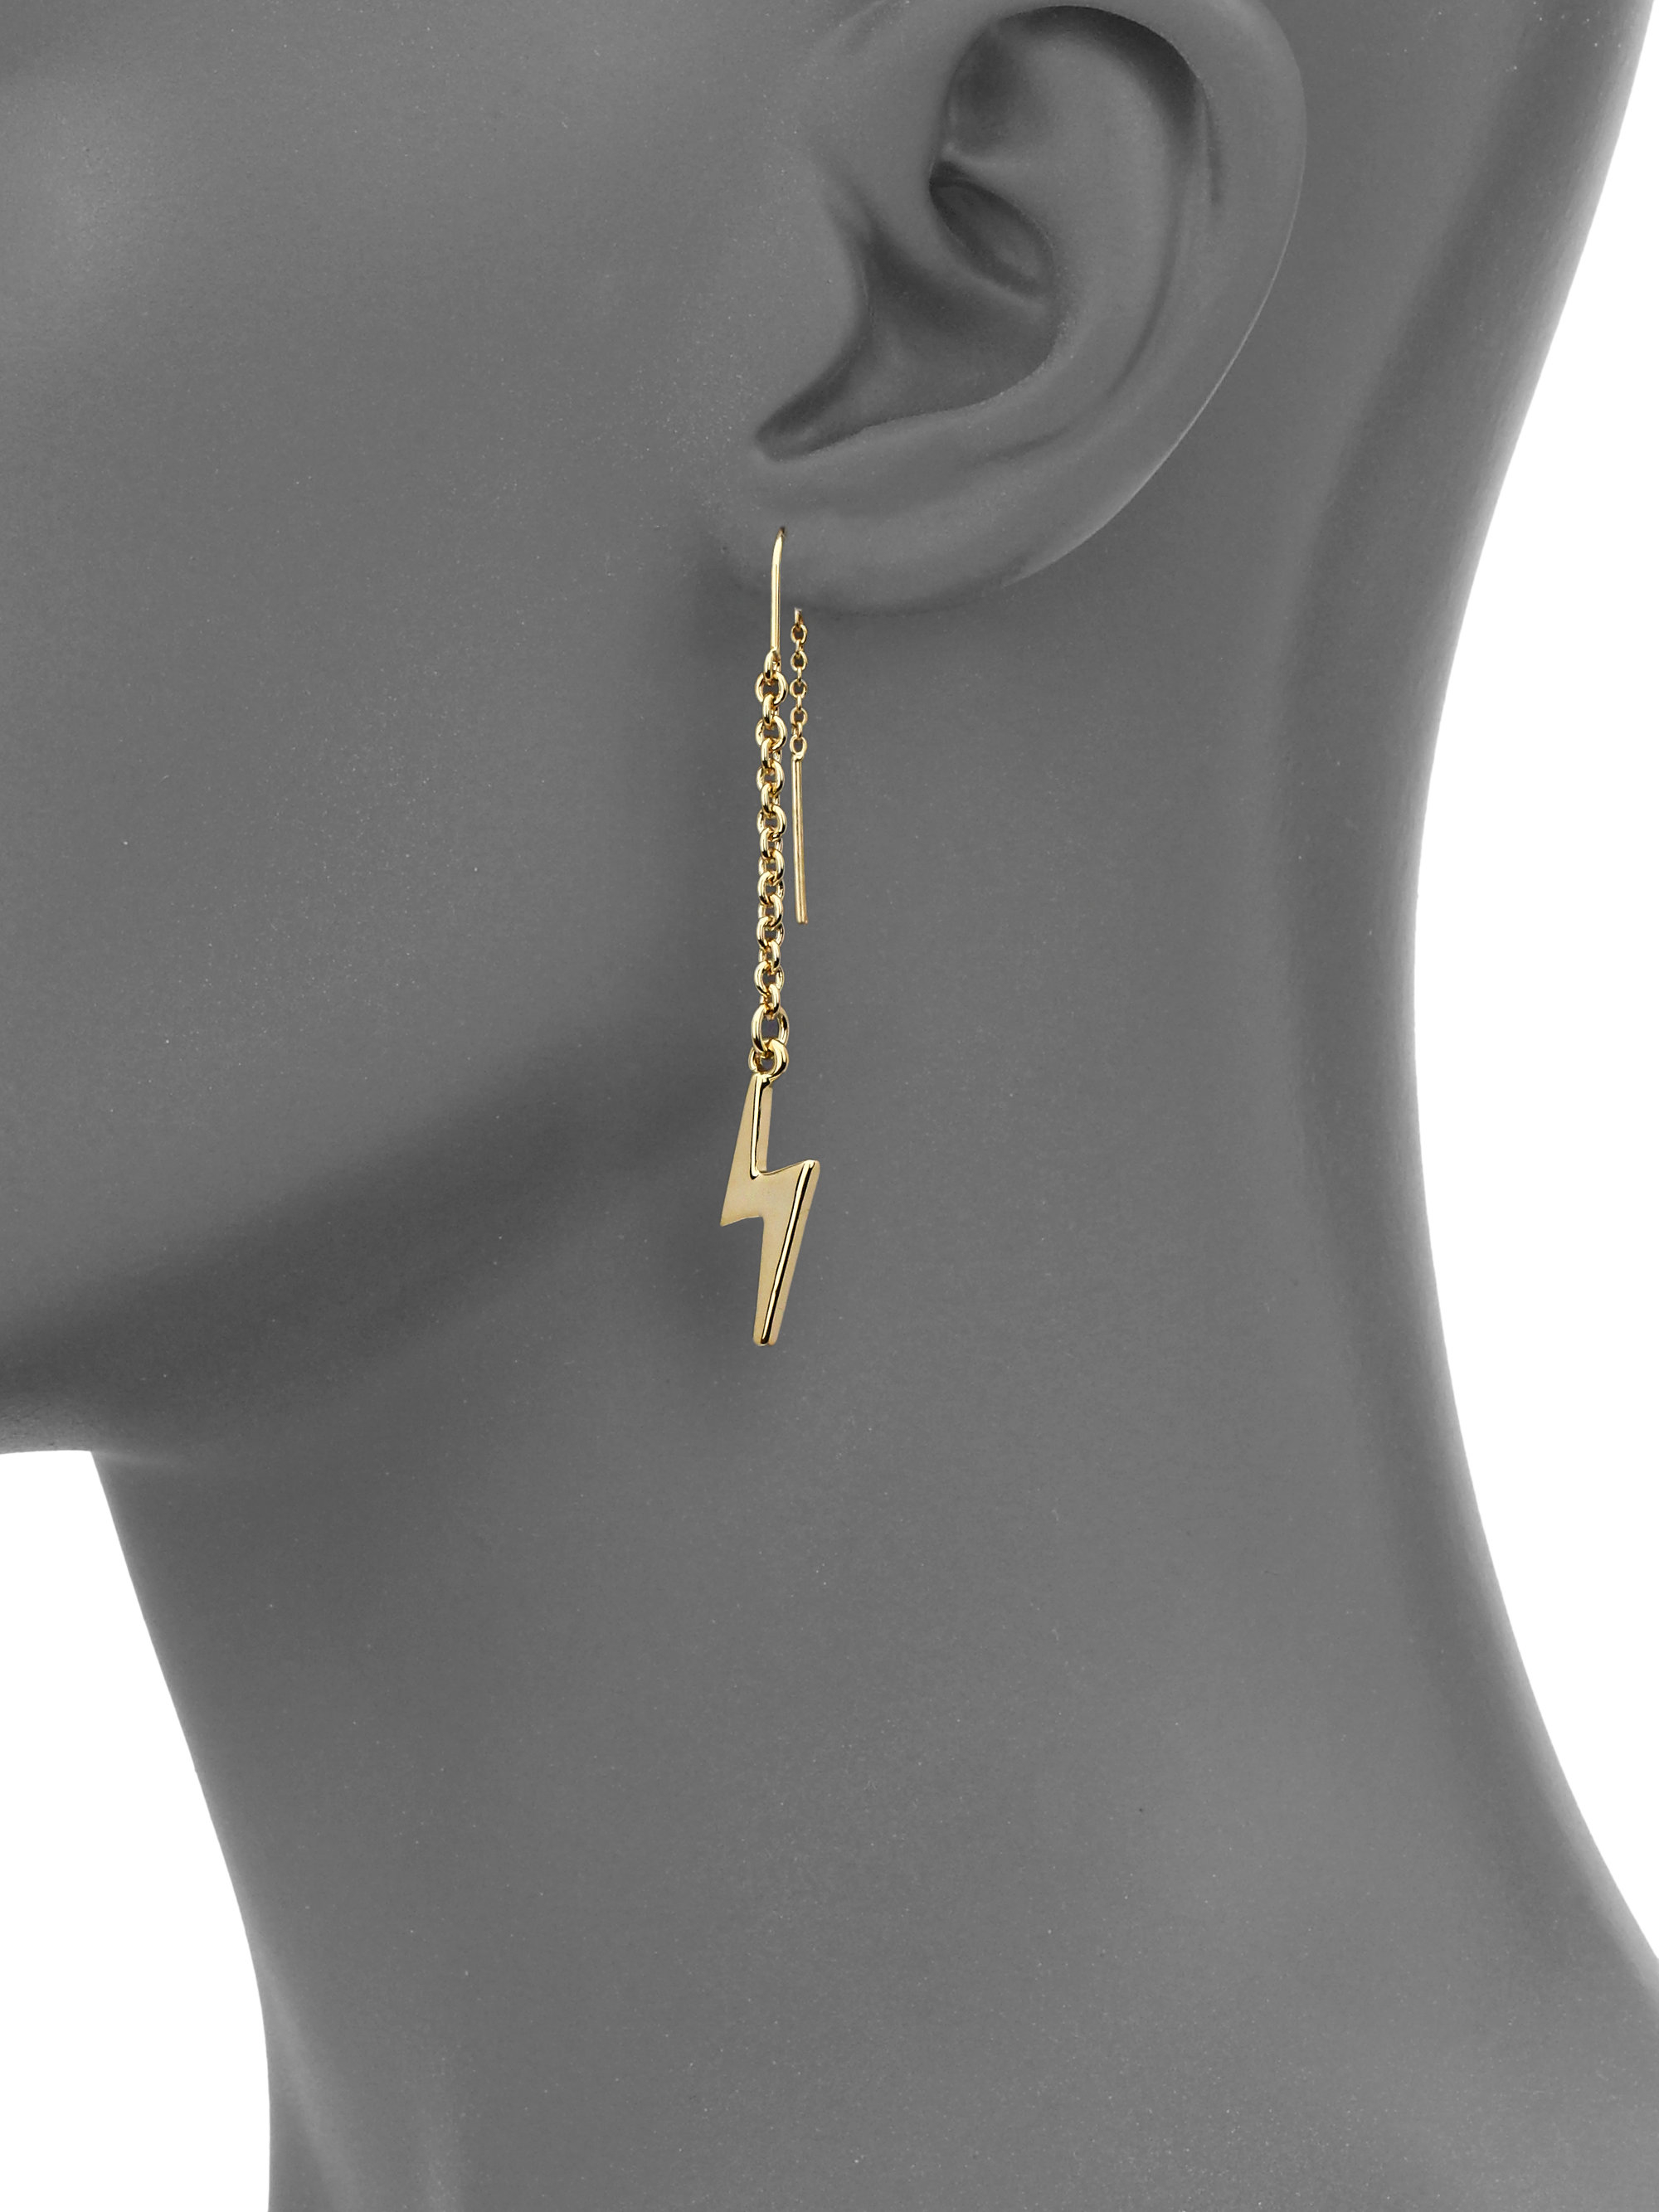 754c4fdfb Marc By Marc Jacobs Lightning Bolt Threaded Drop Earrings in ...